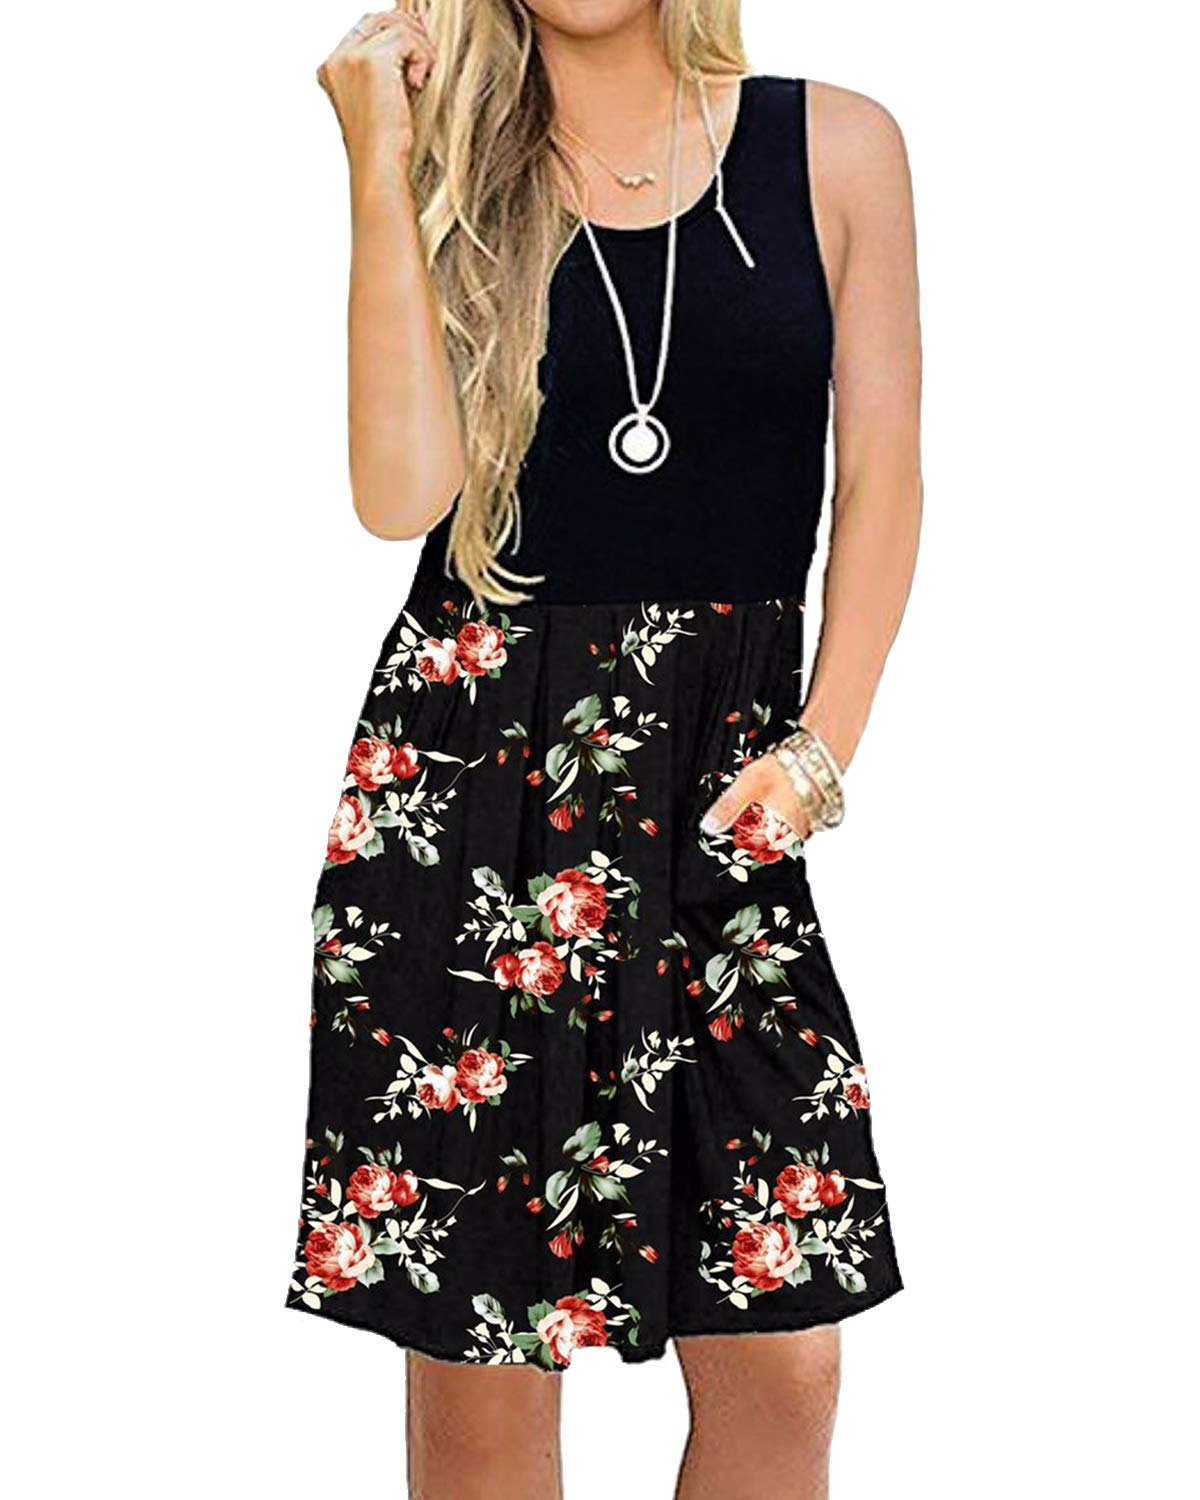 deesdail Long Floral Black Dresses for Women, Ladies Round Neck Summer Sleeveless Tank Dress with Pockets Midi Length Casual Shirts Flower Black M